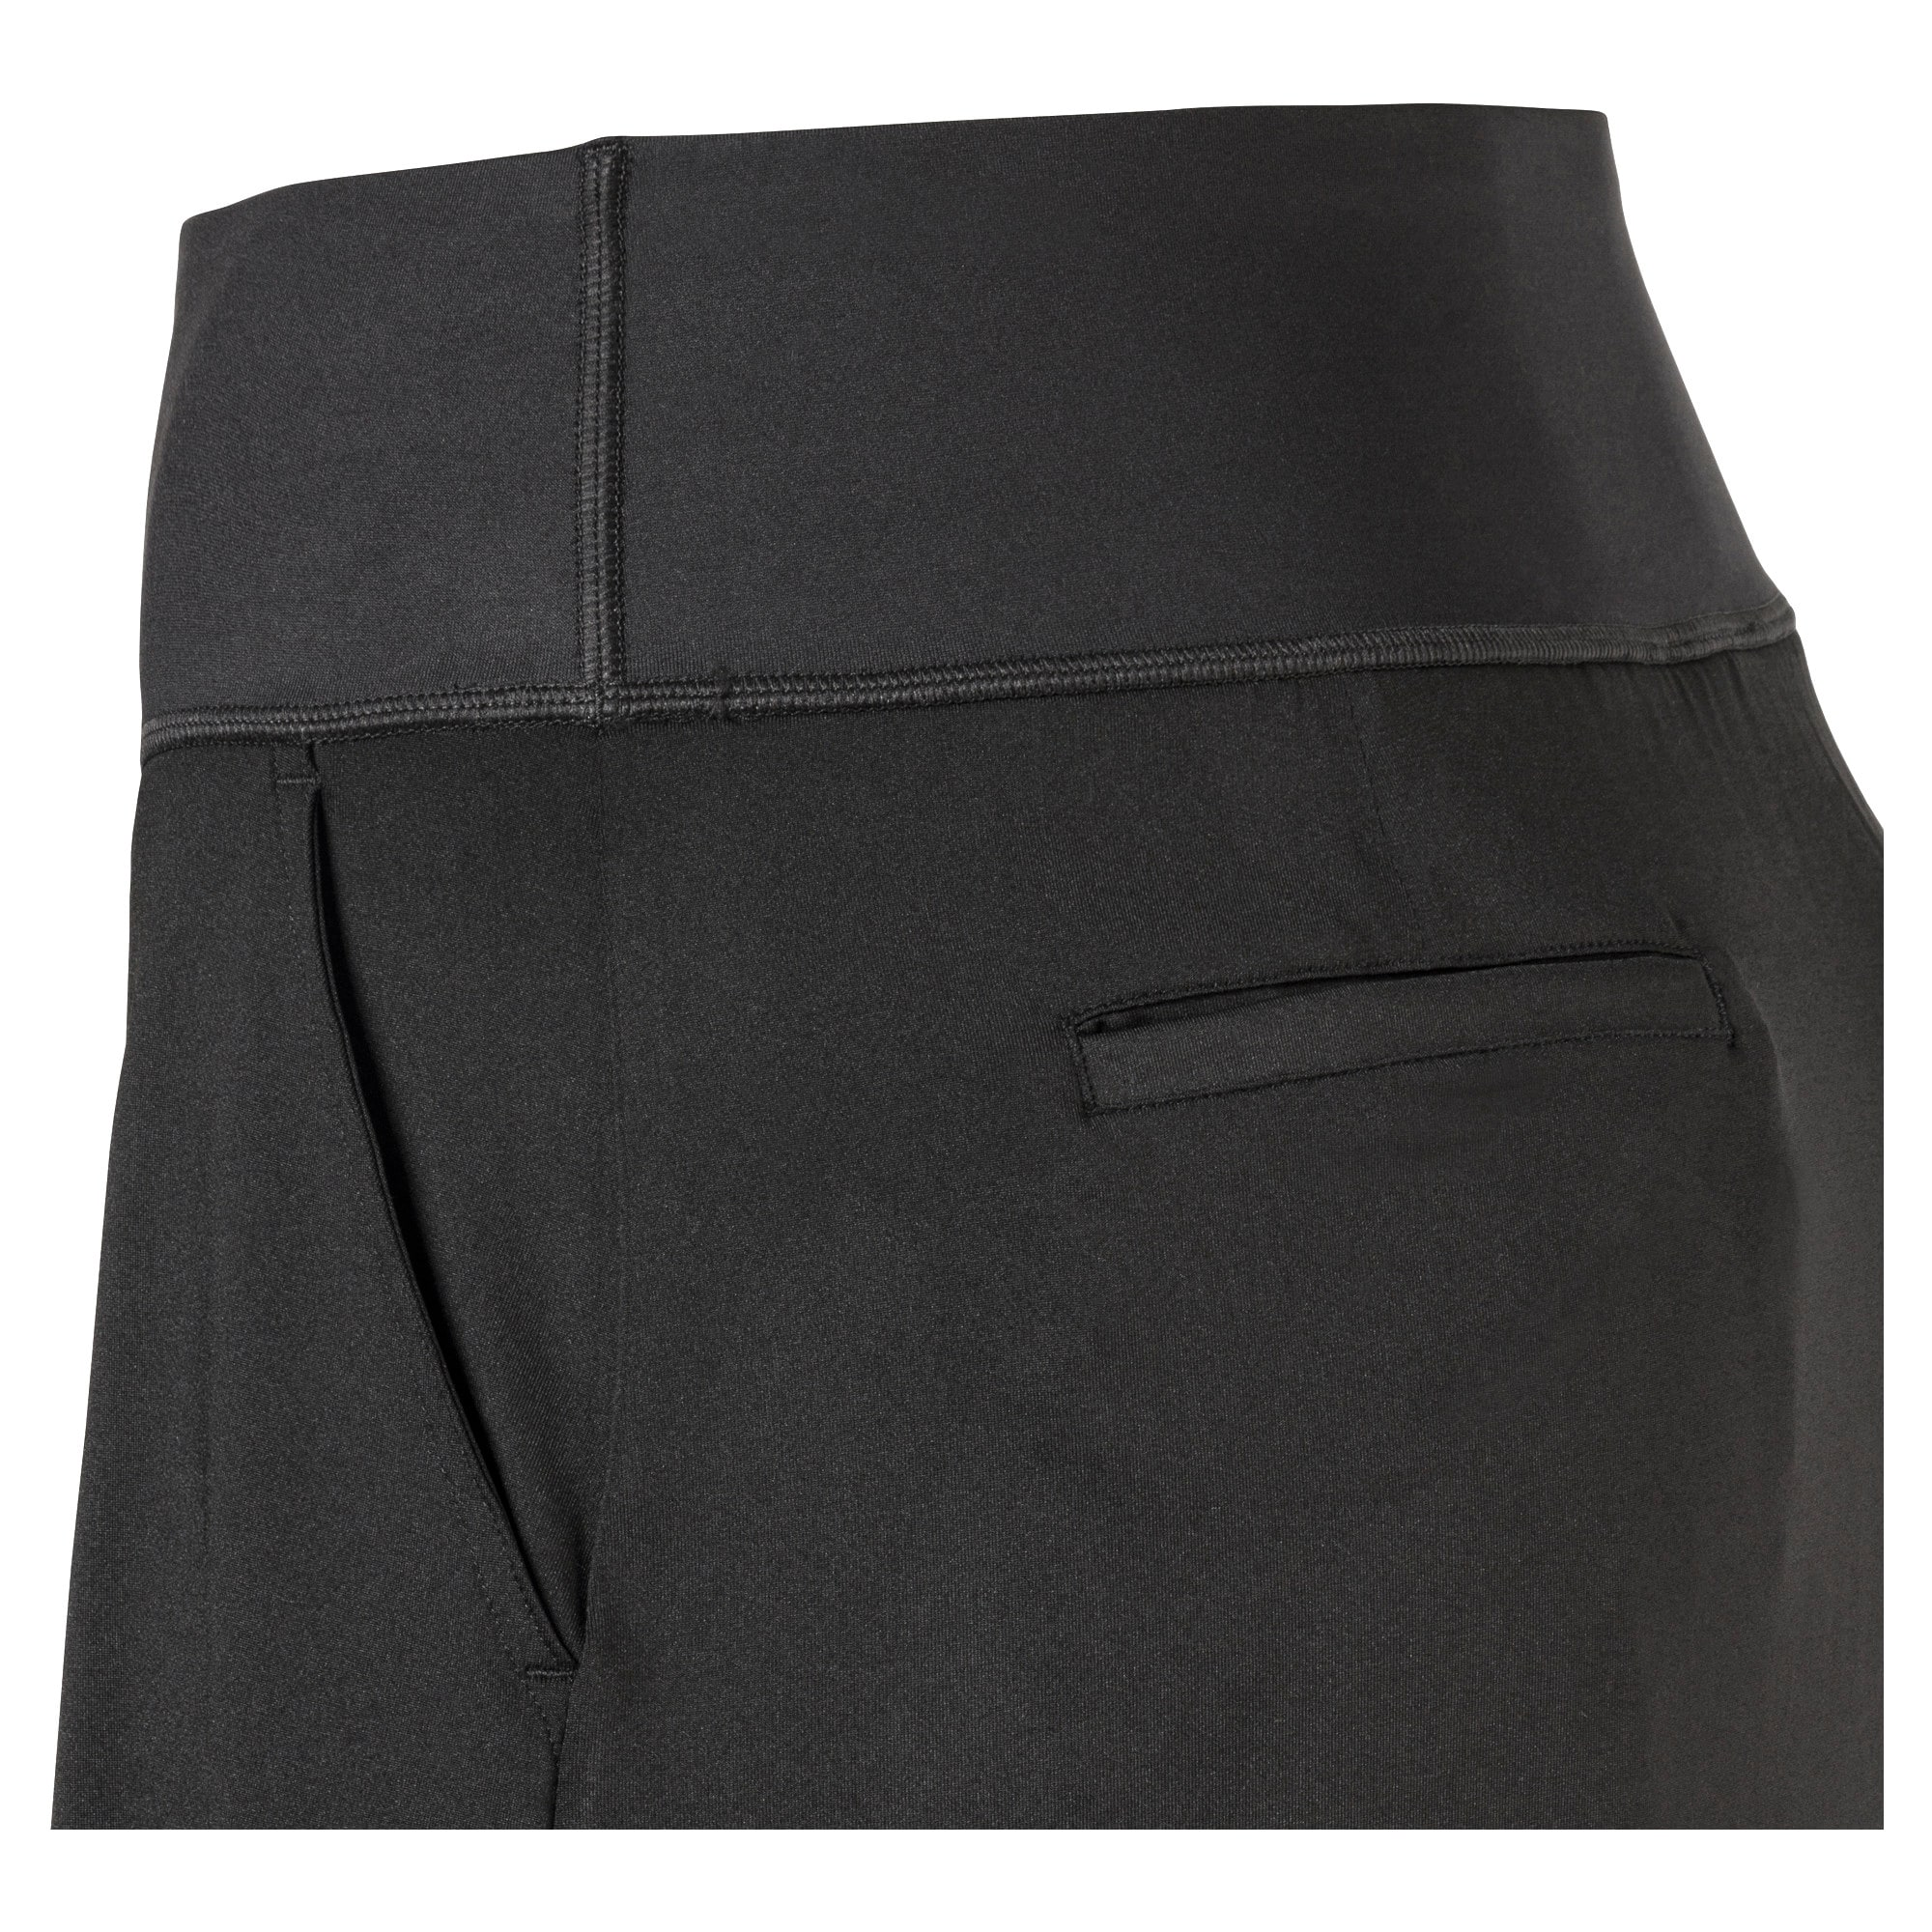 Thumbnail 6 of Golf Women's PWRSHAPE Solid Knit Skirt, Puma Black, medium